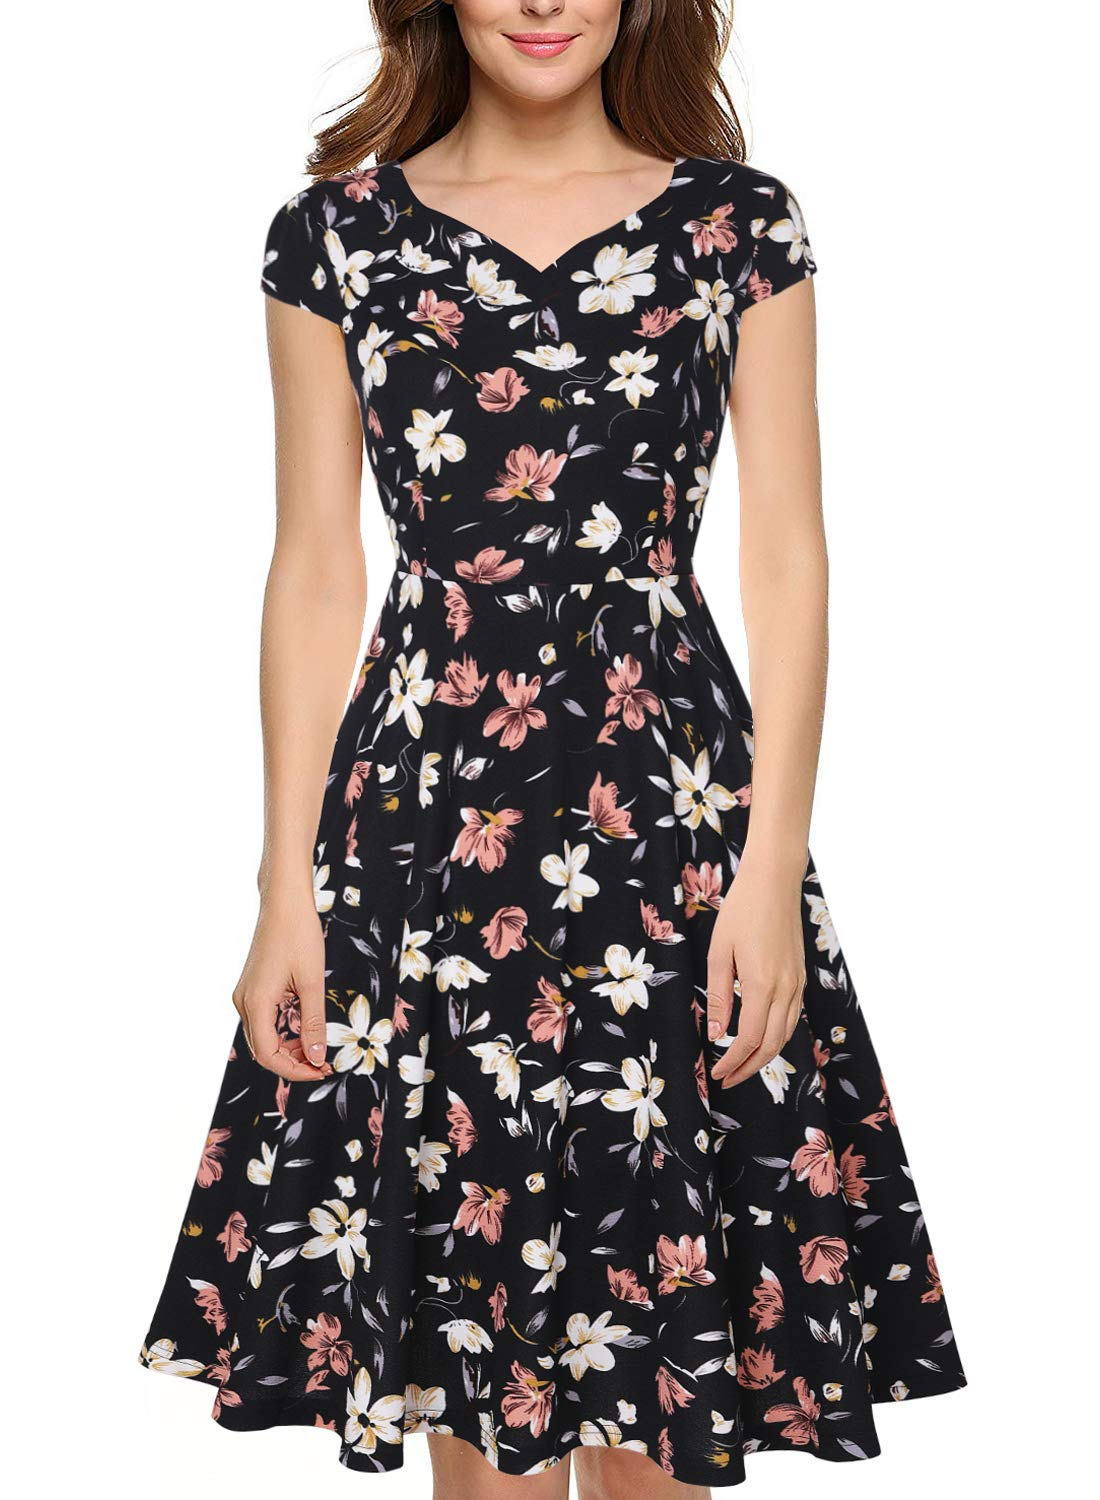 oten Women Summer Casusl Cap Sleeve Pockets Floral Flared A Line Swing Cocktail Party Dress